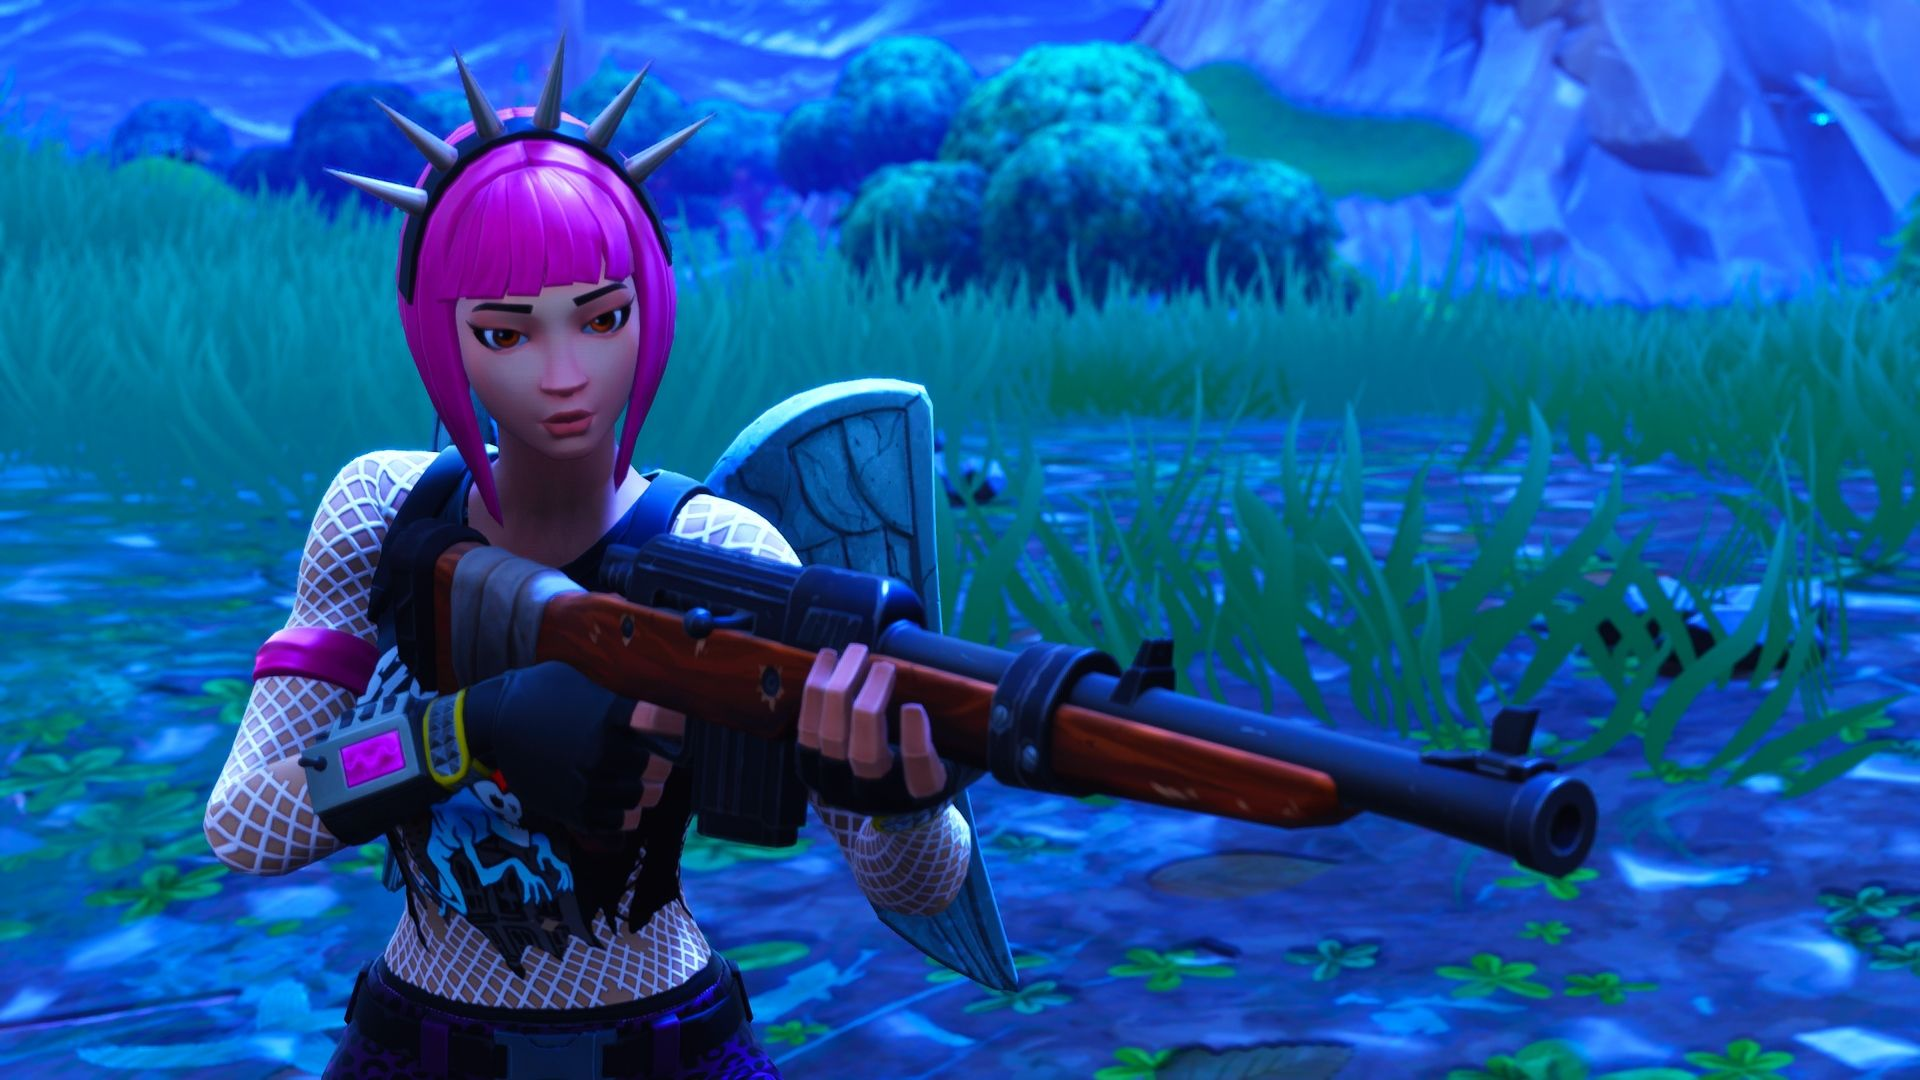 1920x1080 Hd Wallpaper Of Power Chord Fortnite Battle Royale Video Game Jogos